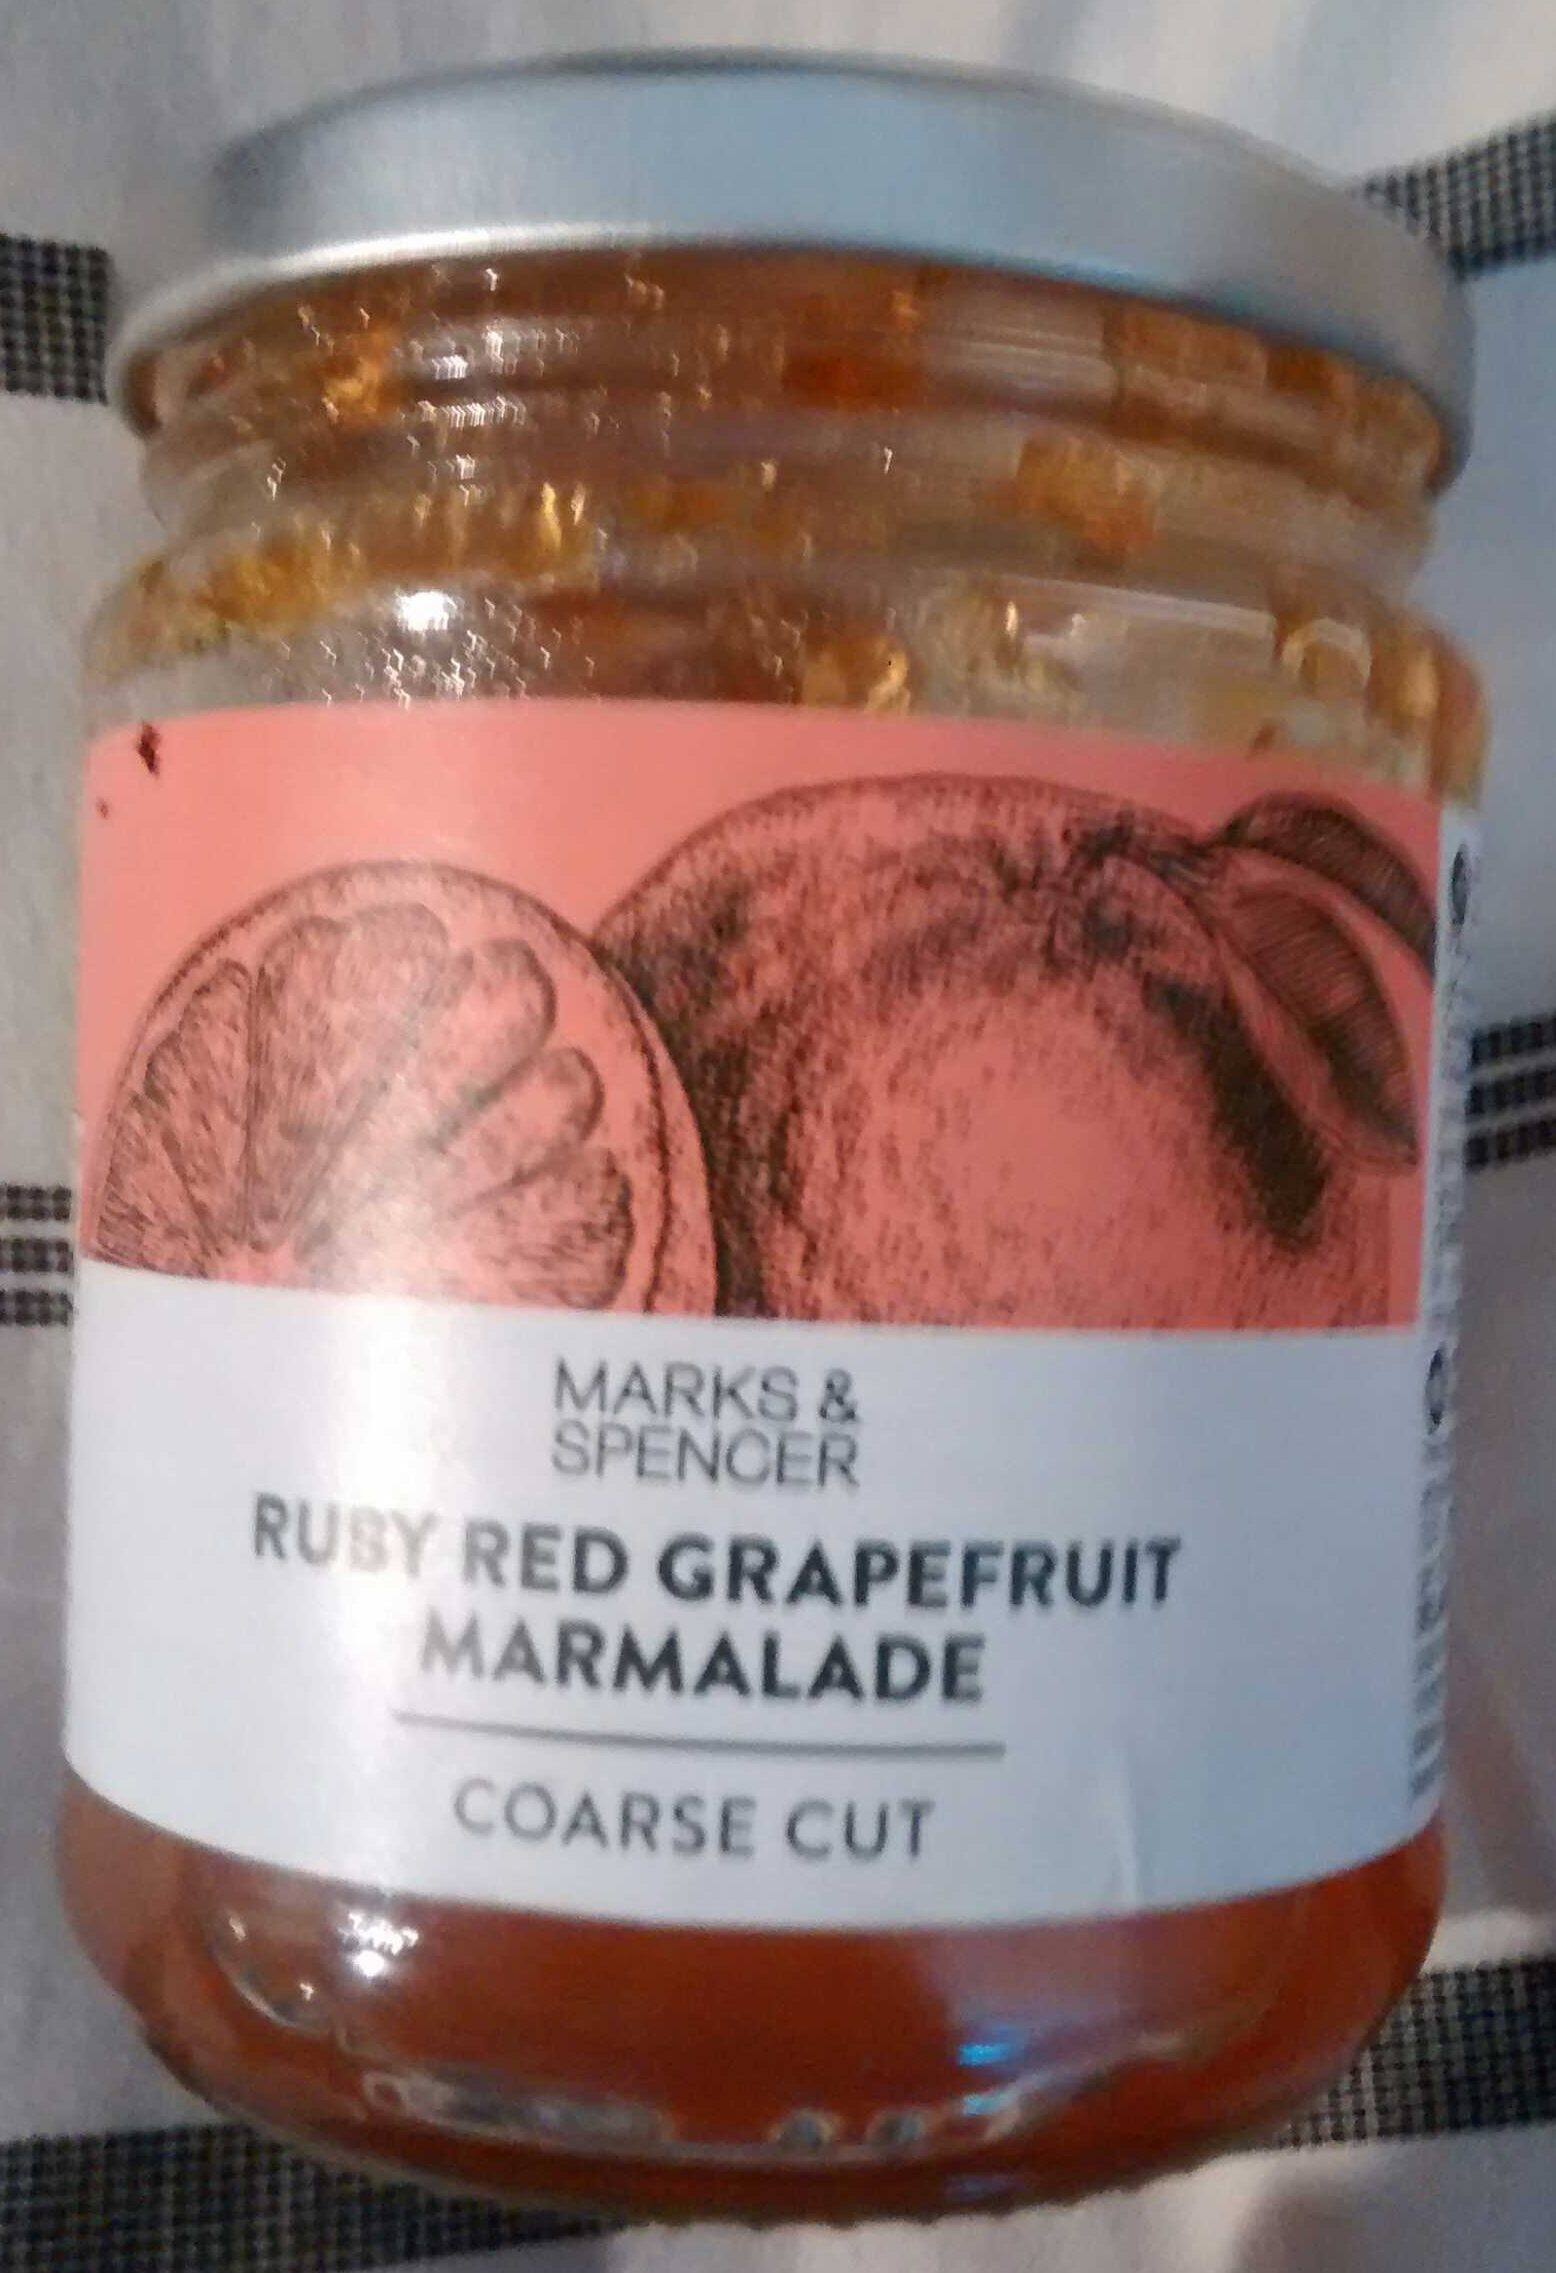 Ruby red grapefruit marmalade - Product